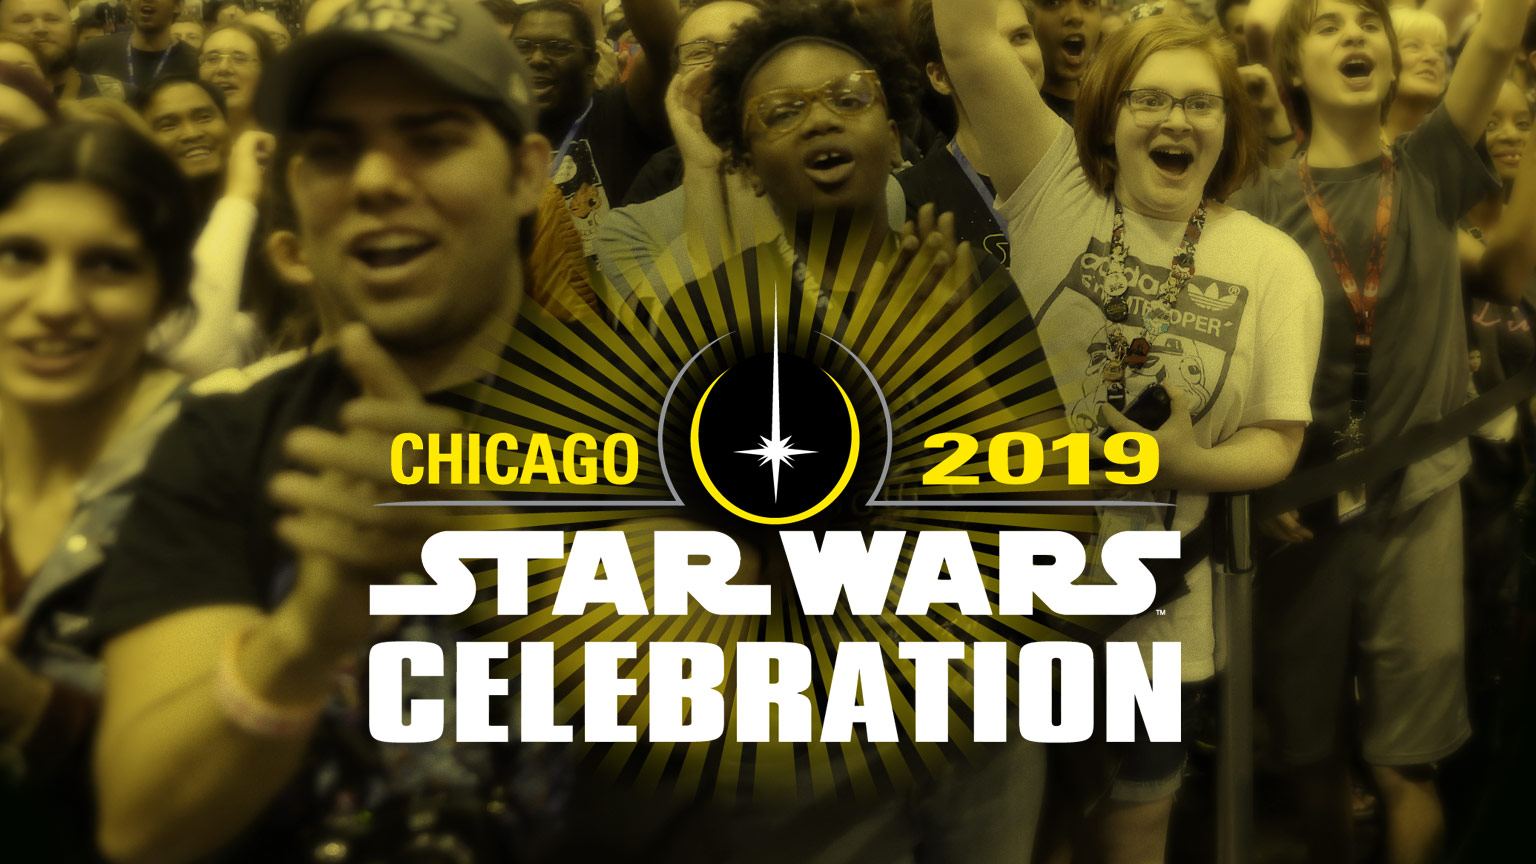 Star Wars Celebration 2019 Announced on The Star Wars Show